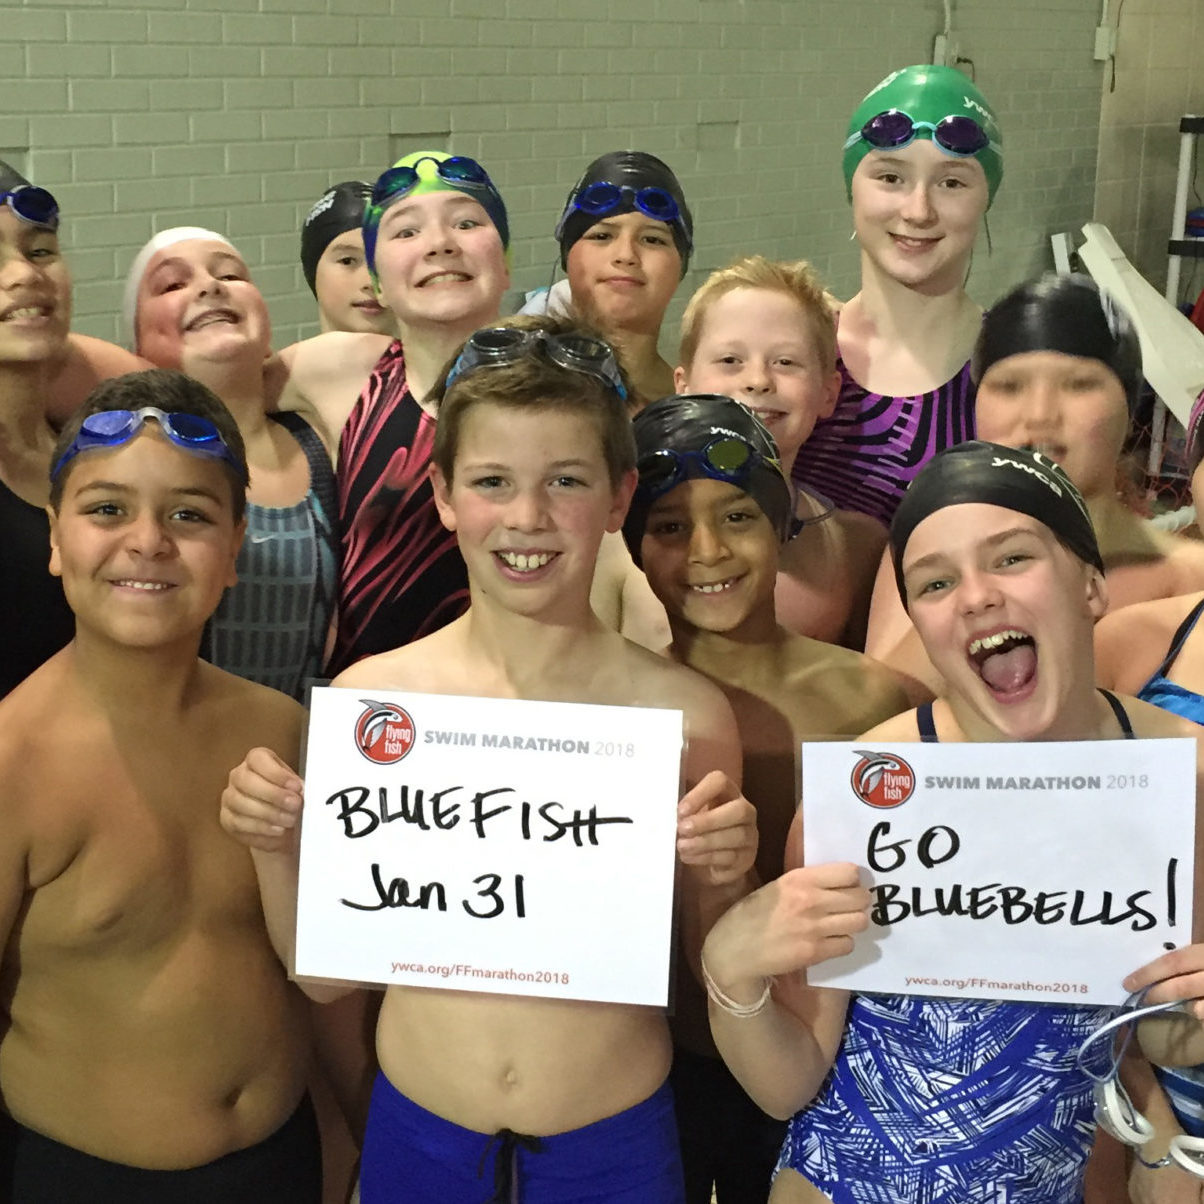 Bluefish swimmers